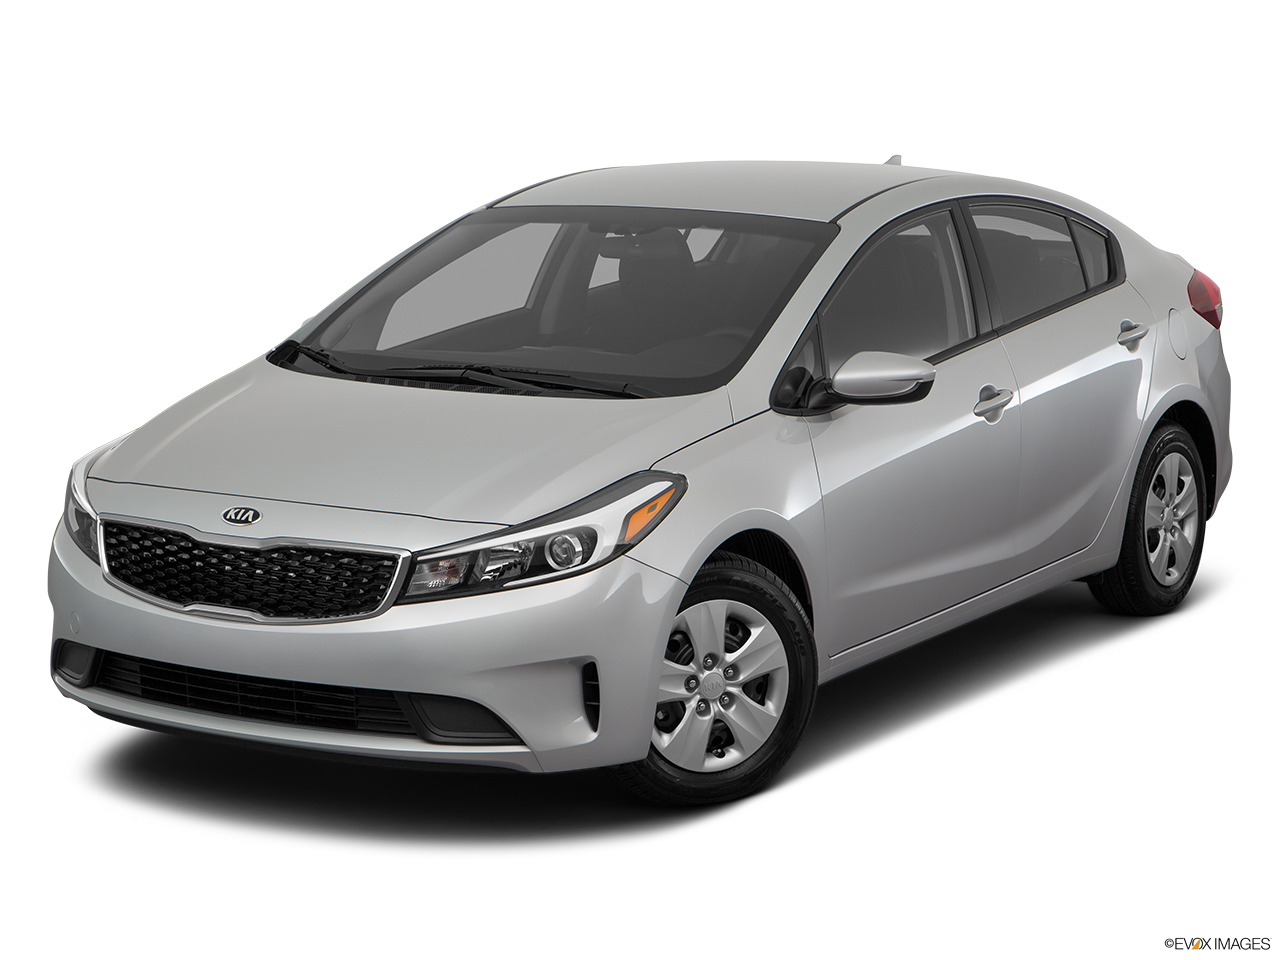 2018 Kia Cerato Prices In Qatar Gulf Specs Amp Reviews For